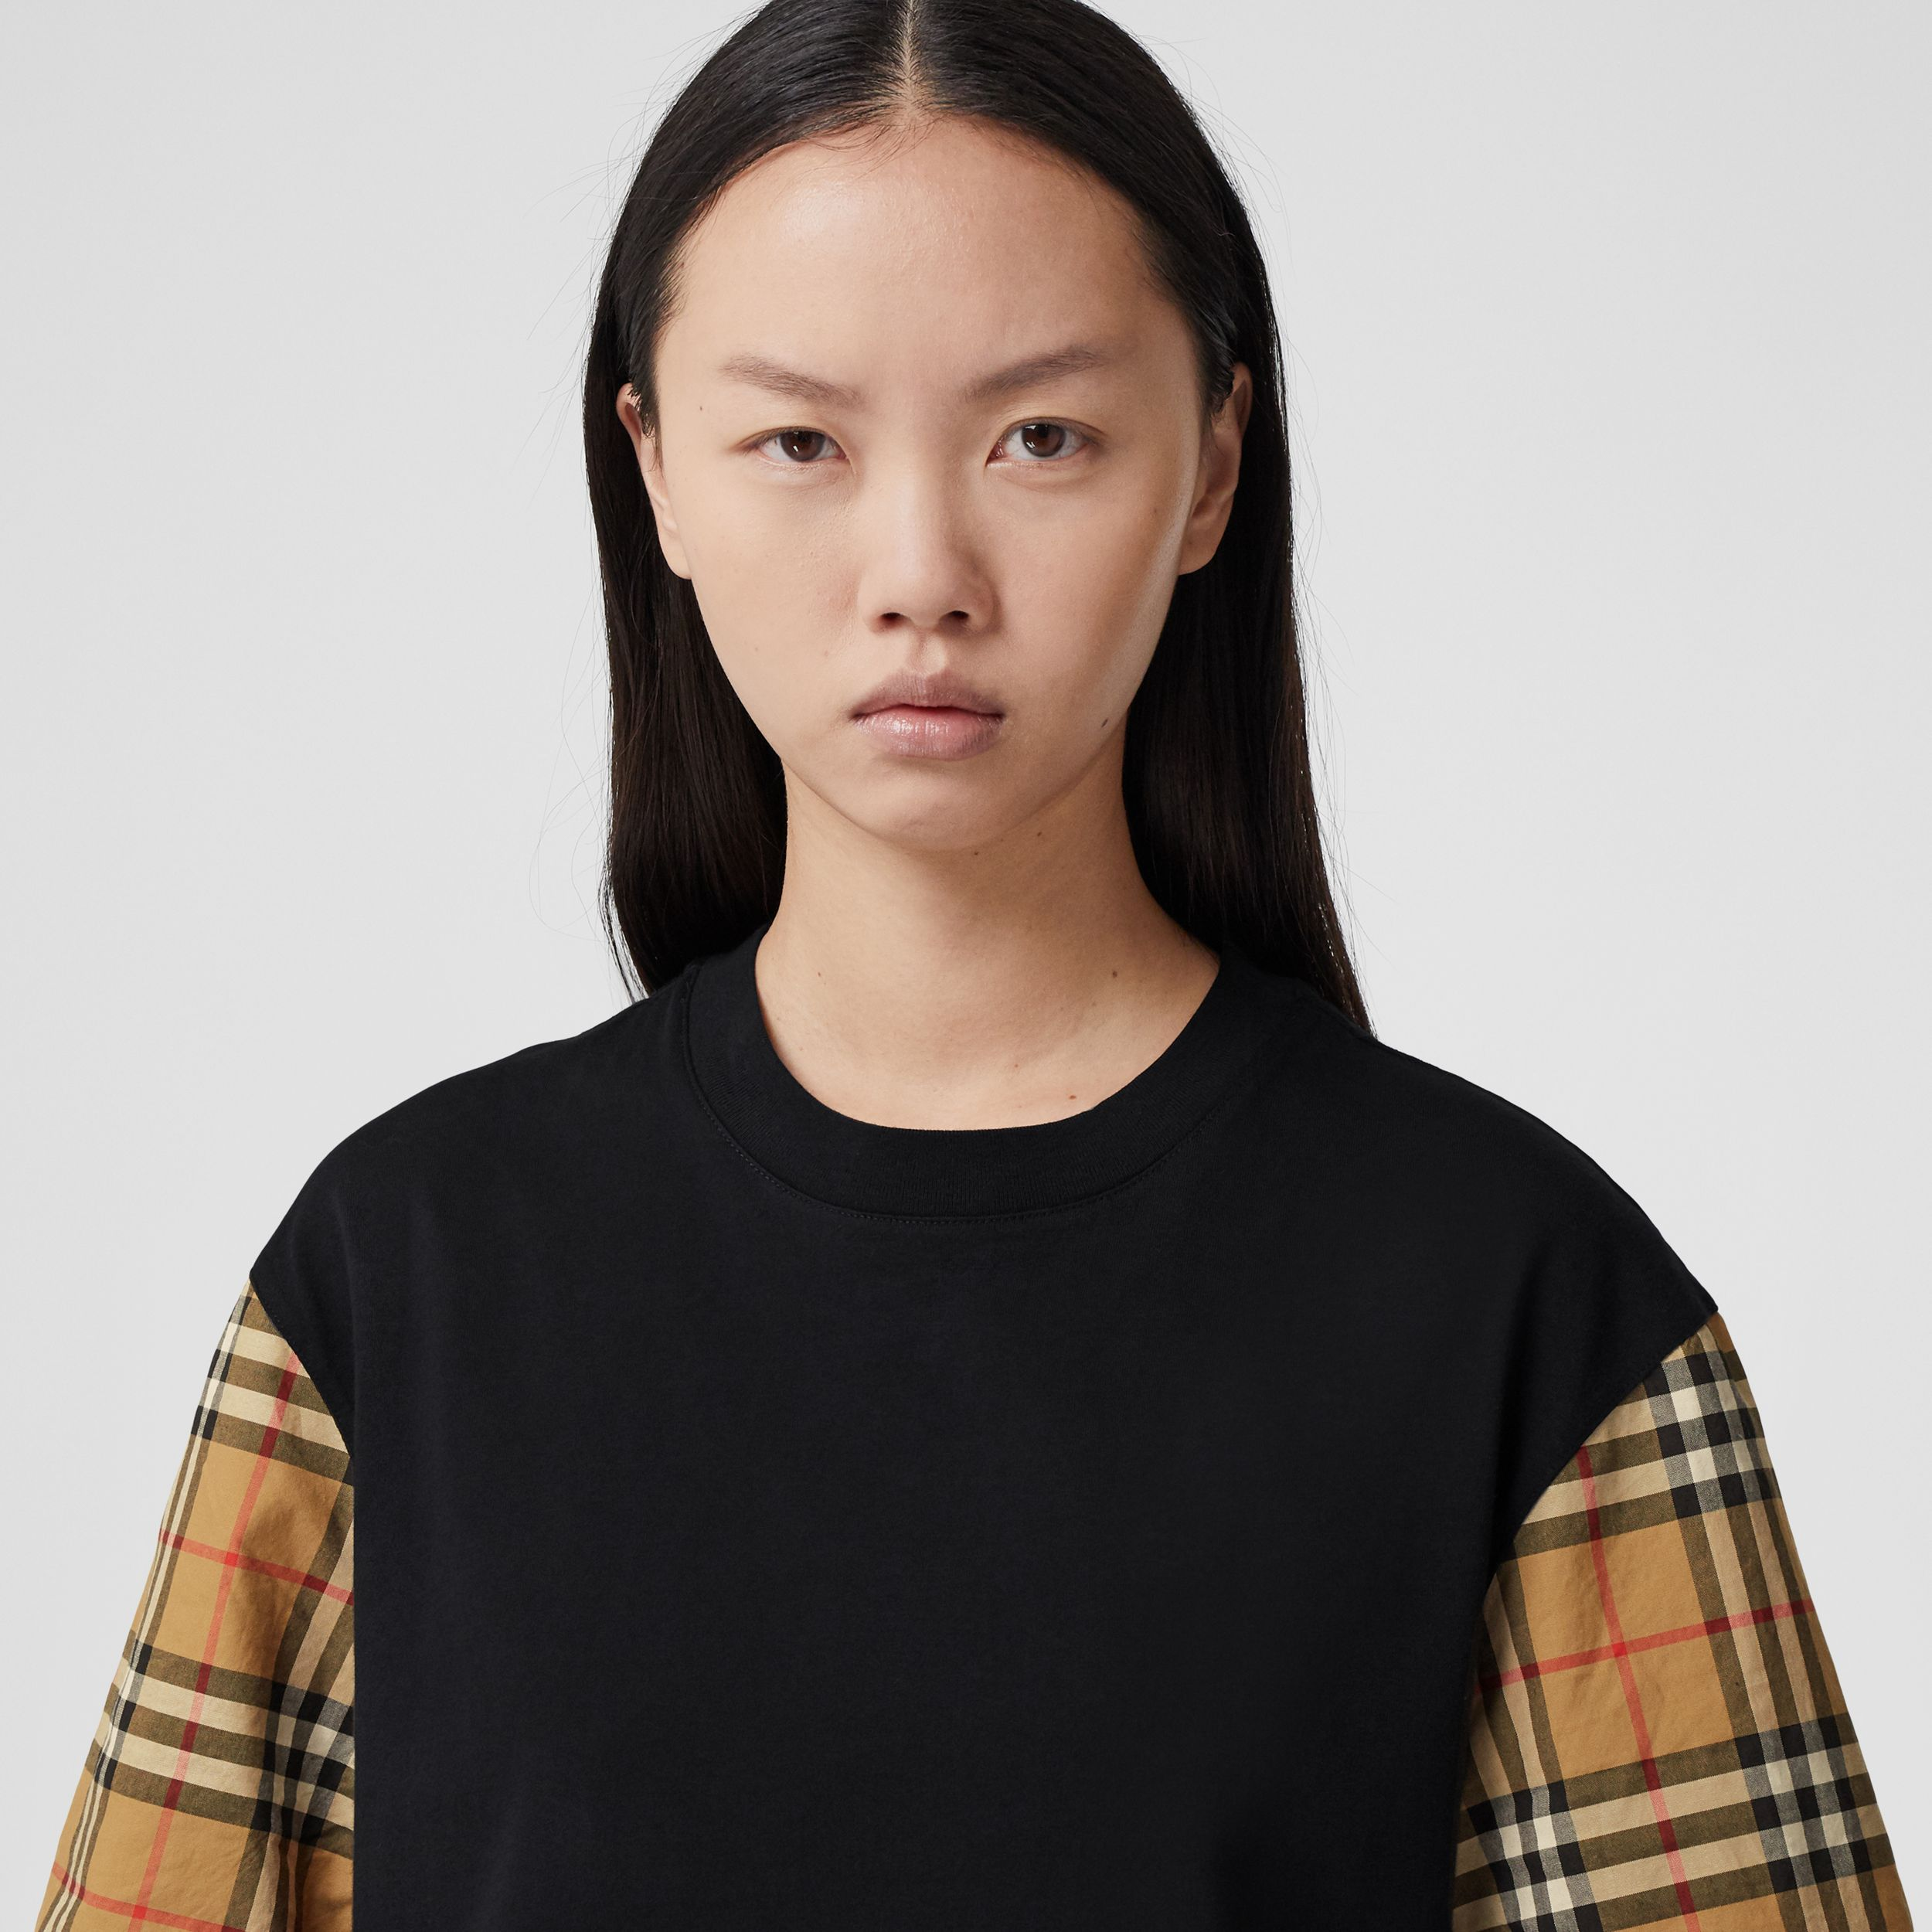 Vintage Check Sleeve Cotton T-shirt in Black - Women | Burberry - 2